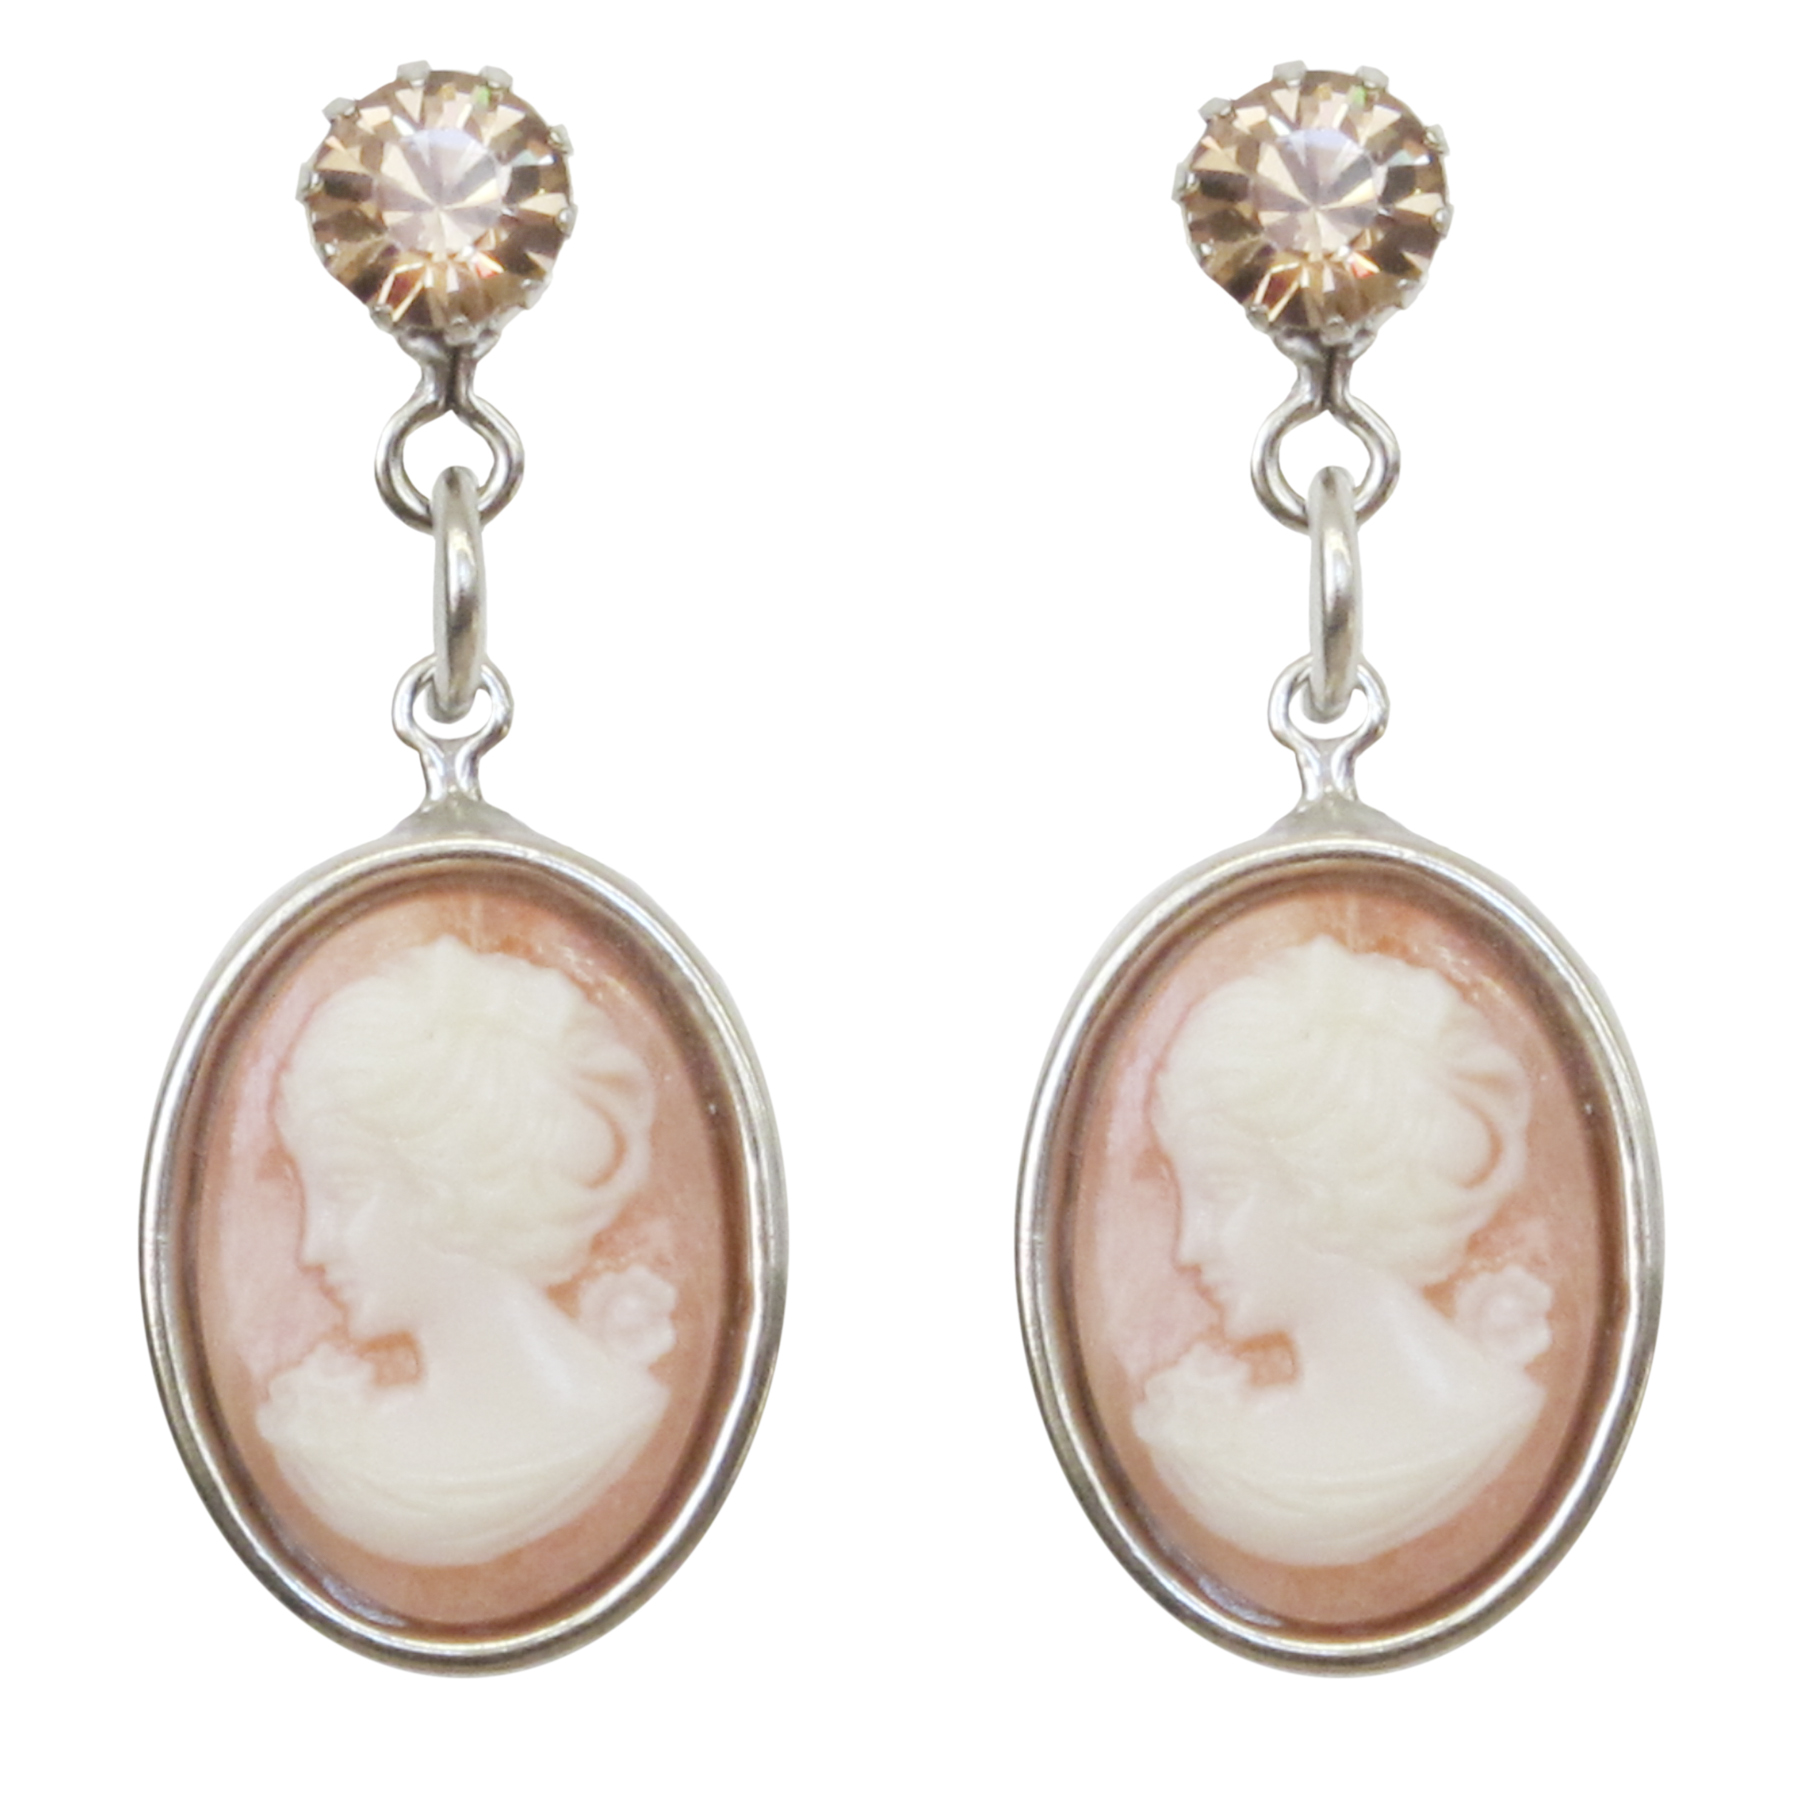 Tarina Tarantino Jewelry Iconic Blush Small Cameo Drop Earrings